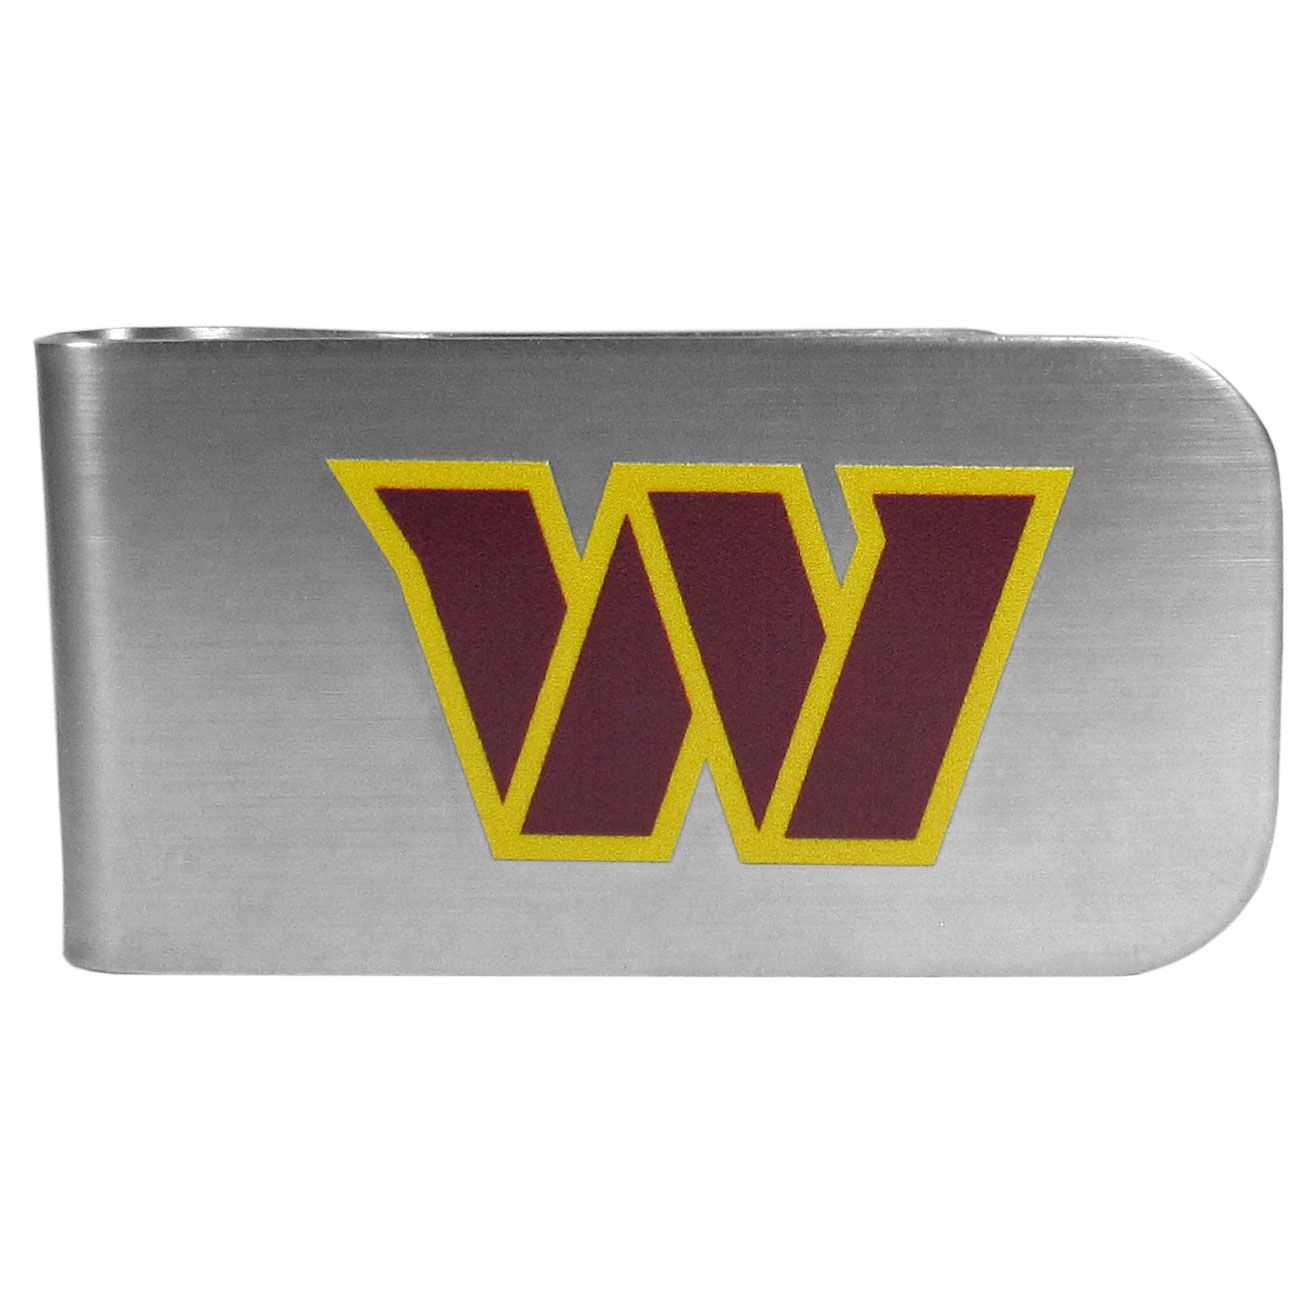 Washington Redskins Logo Bottle Opener Money Clip - This unique money clip features a classic, brushed-metal finish with a handy bottle opener feature on the back. The clip has the Washington Redskins logo expertly printed on the front of the clip.